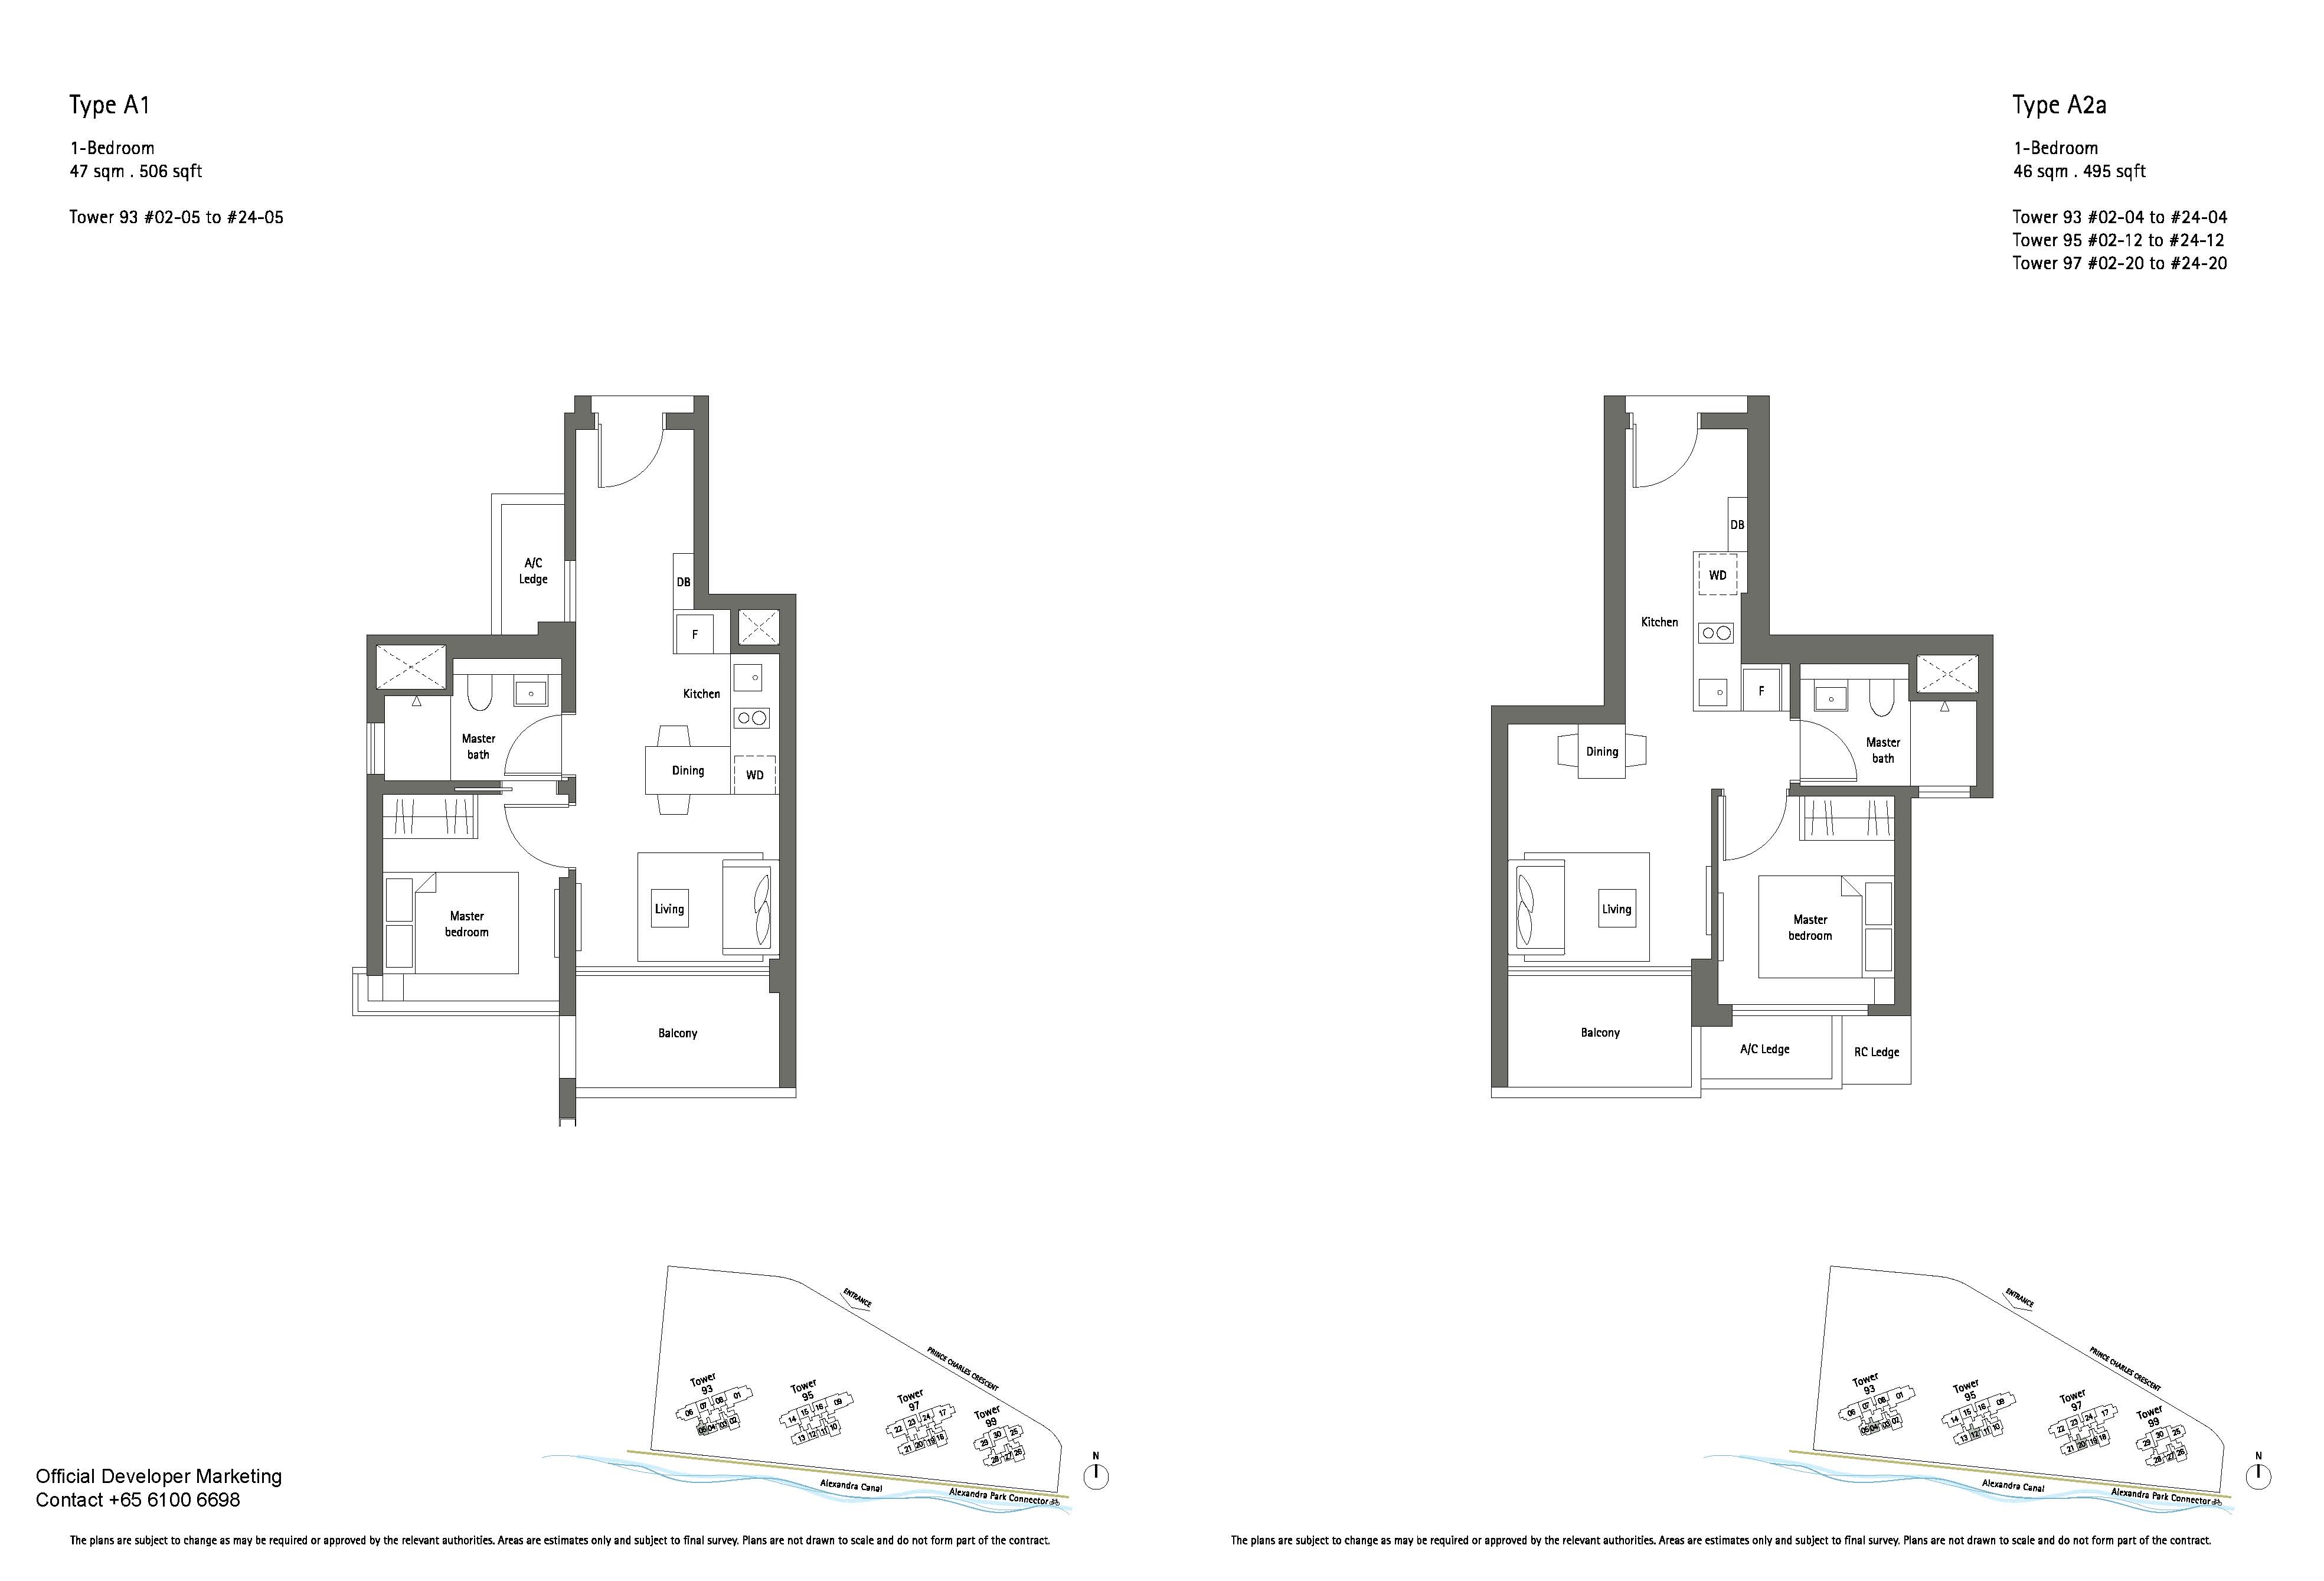 1 Bedroom Type A1 & A2a